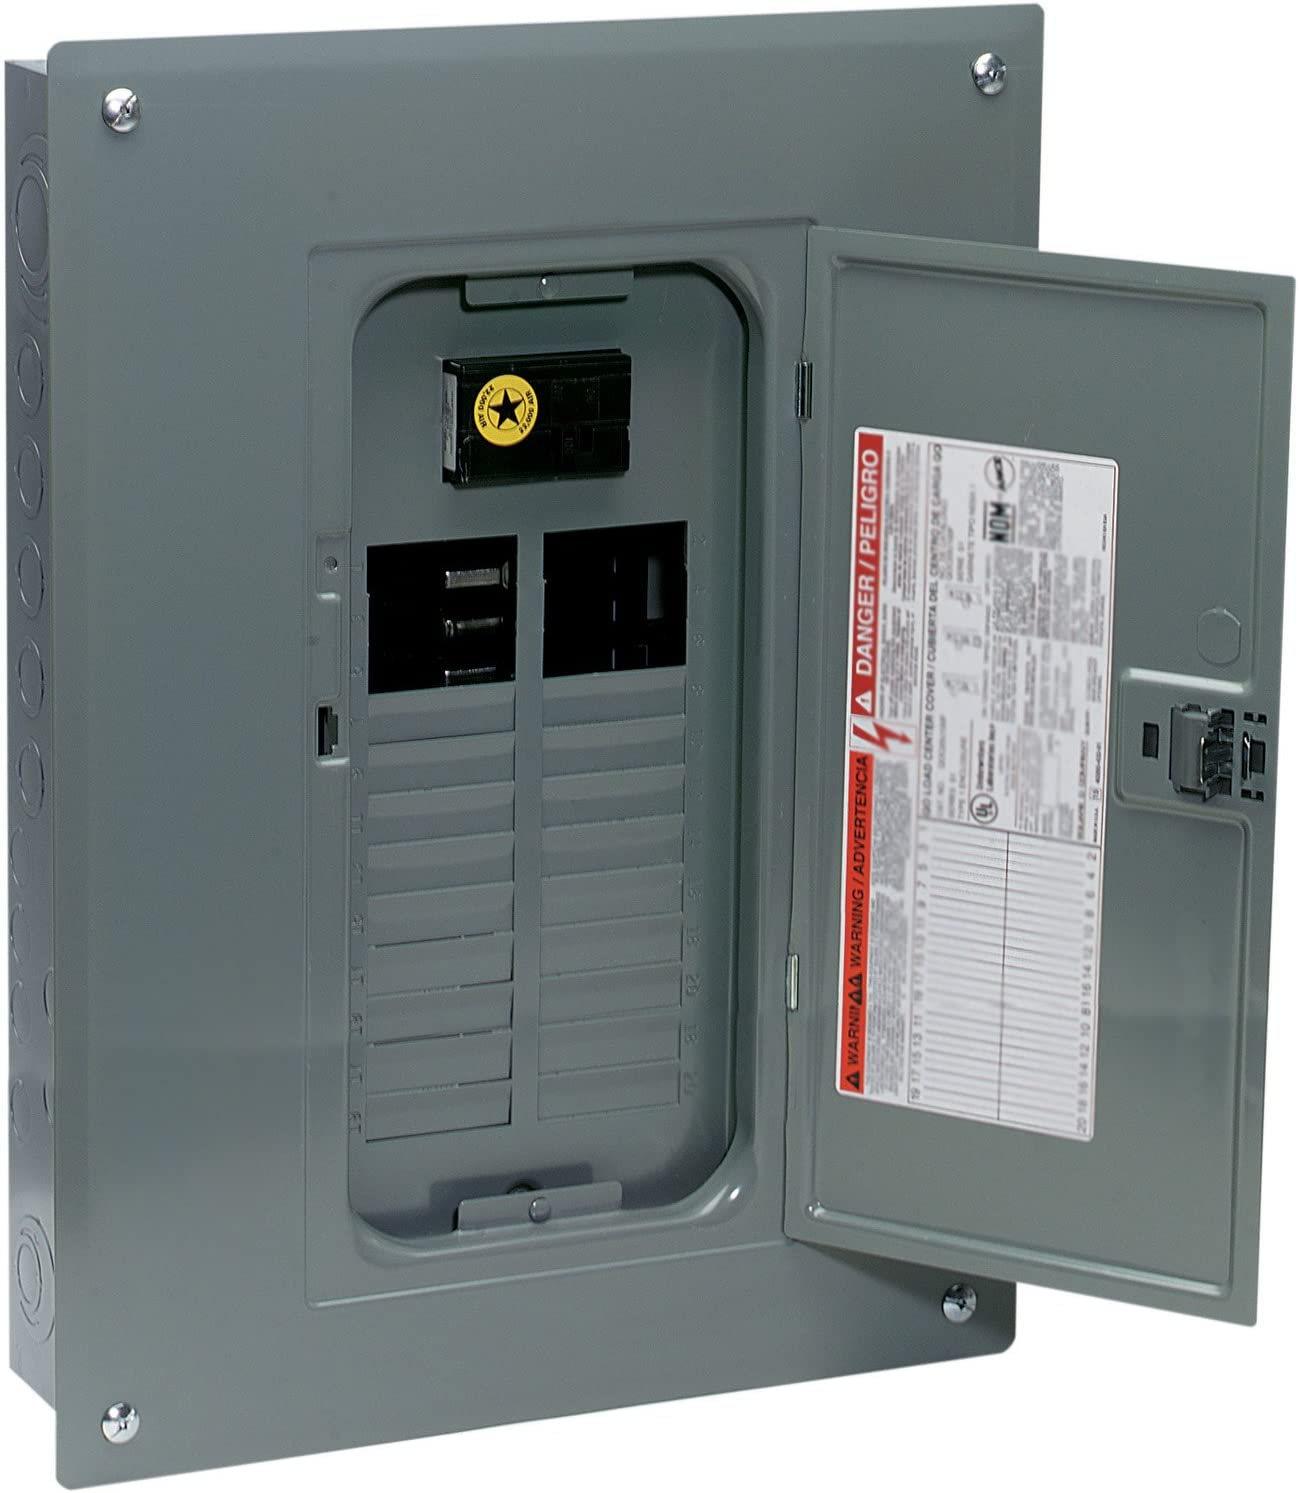 circuit breaker panels amazon com electrical breakers, loadsquare d by schneider electric qo plug on neutral 100 amp main breaker 24